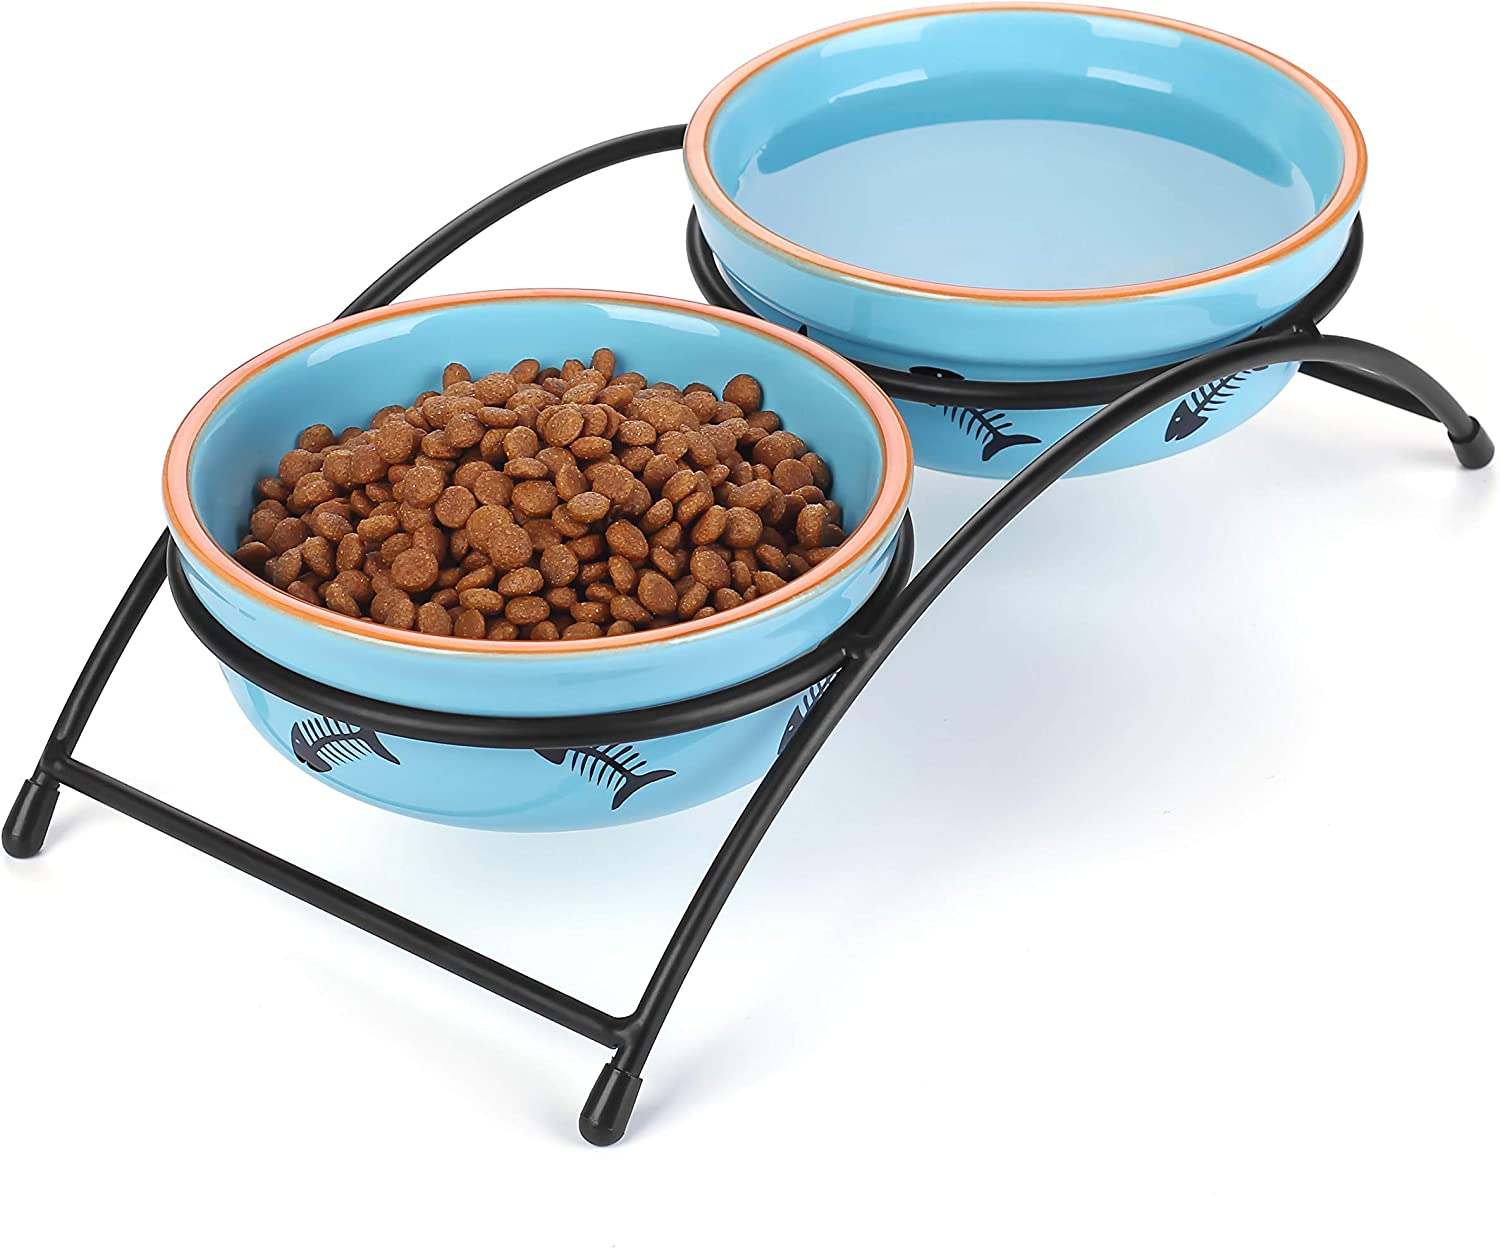 Y YHY Cat Food Dish, Raised Cat Bowls Ceramic, Elevated Cat Bowls for Food and Water, Pet Bowls for Cats and Dogs, Anti Vomiting, Whisker Fatigue, Dishwasher Safe, 12 Ounces